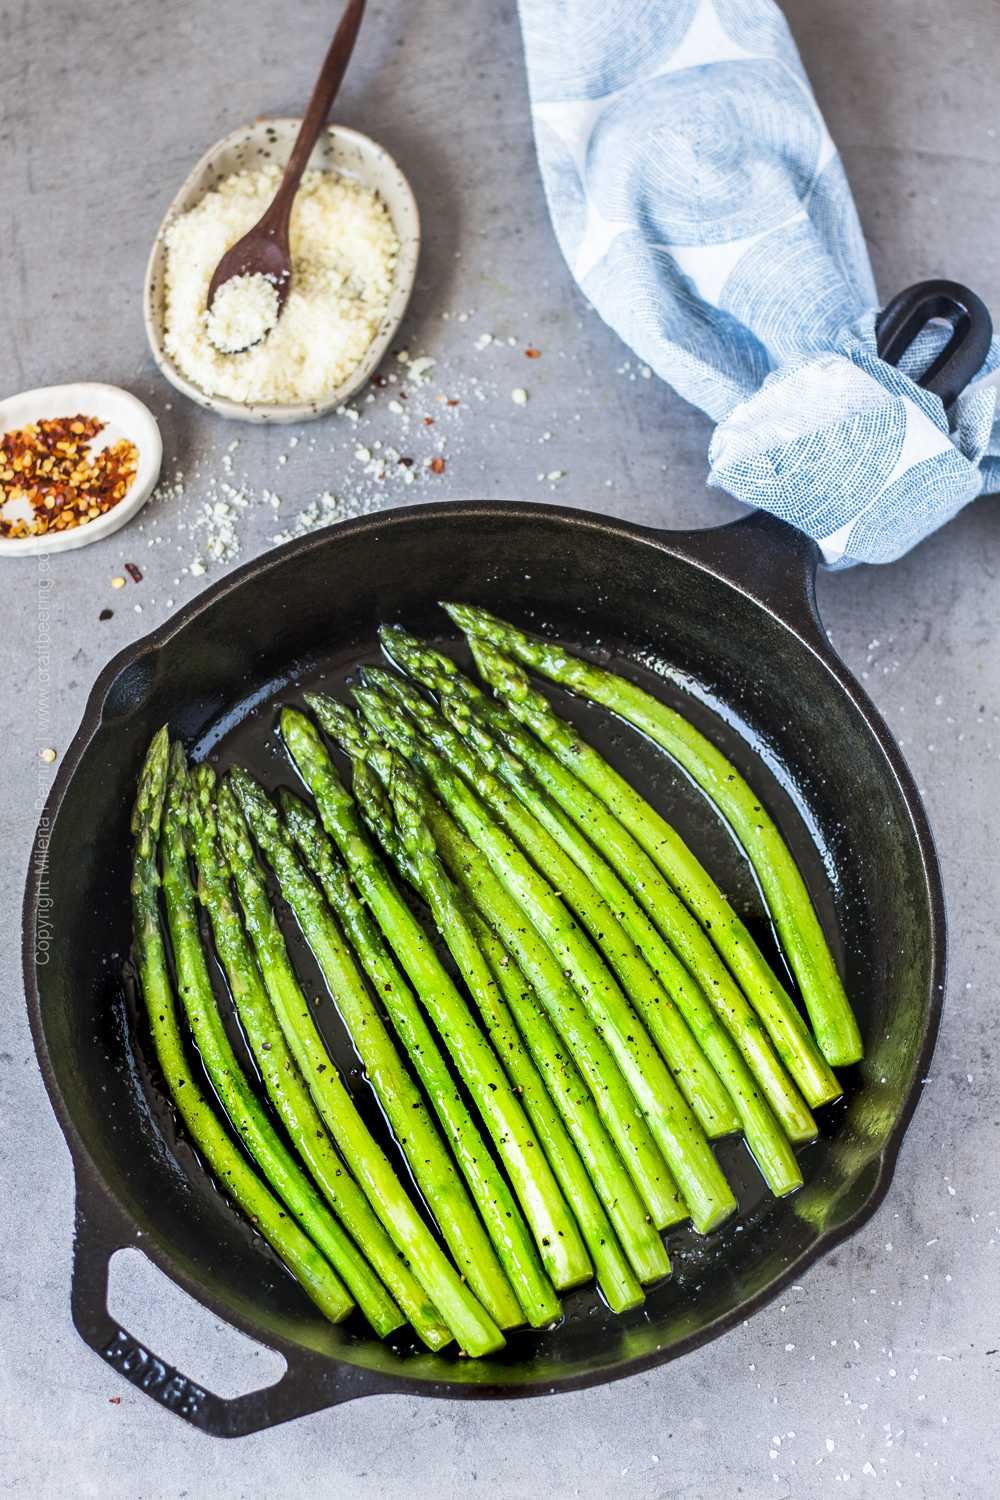 Cast iron skillet sauteed asparagus seasoned with Parmesan and red pepper flakes.